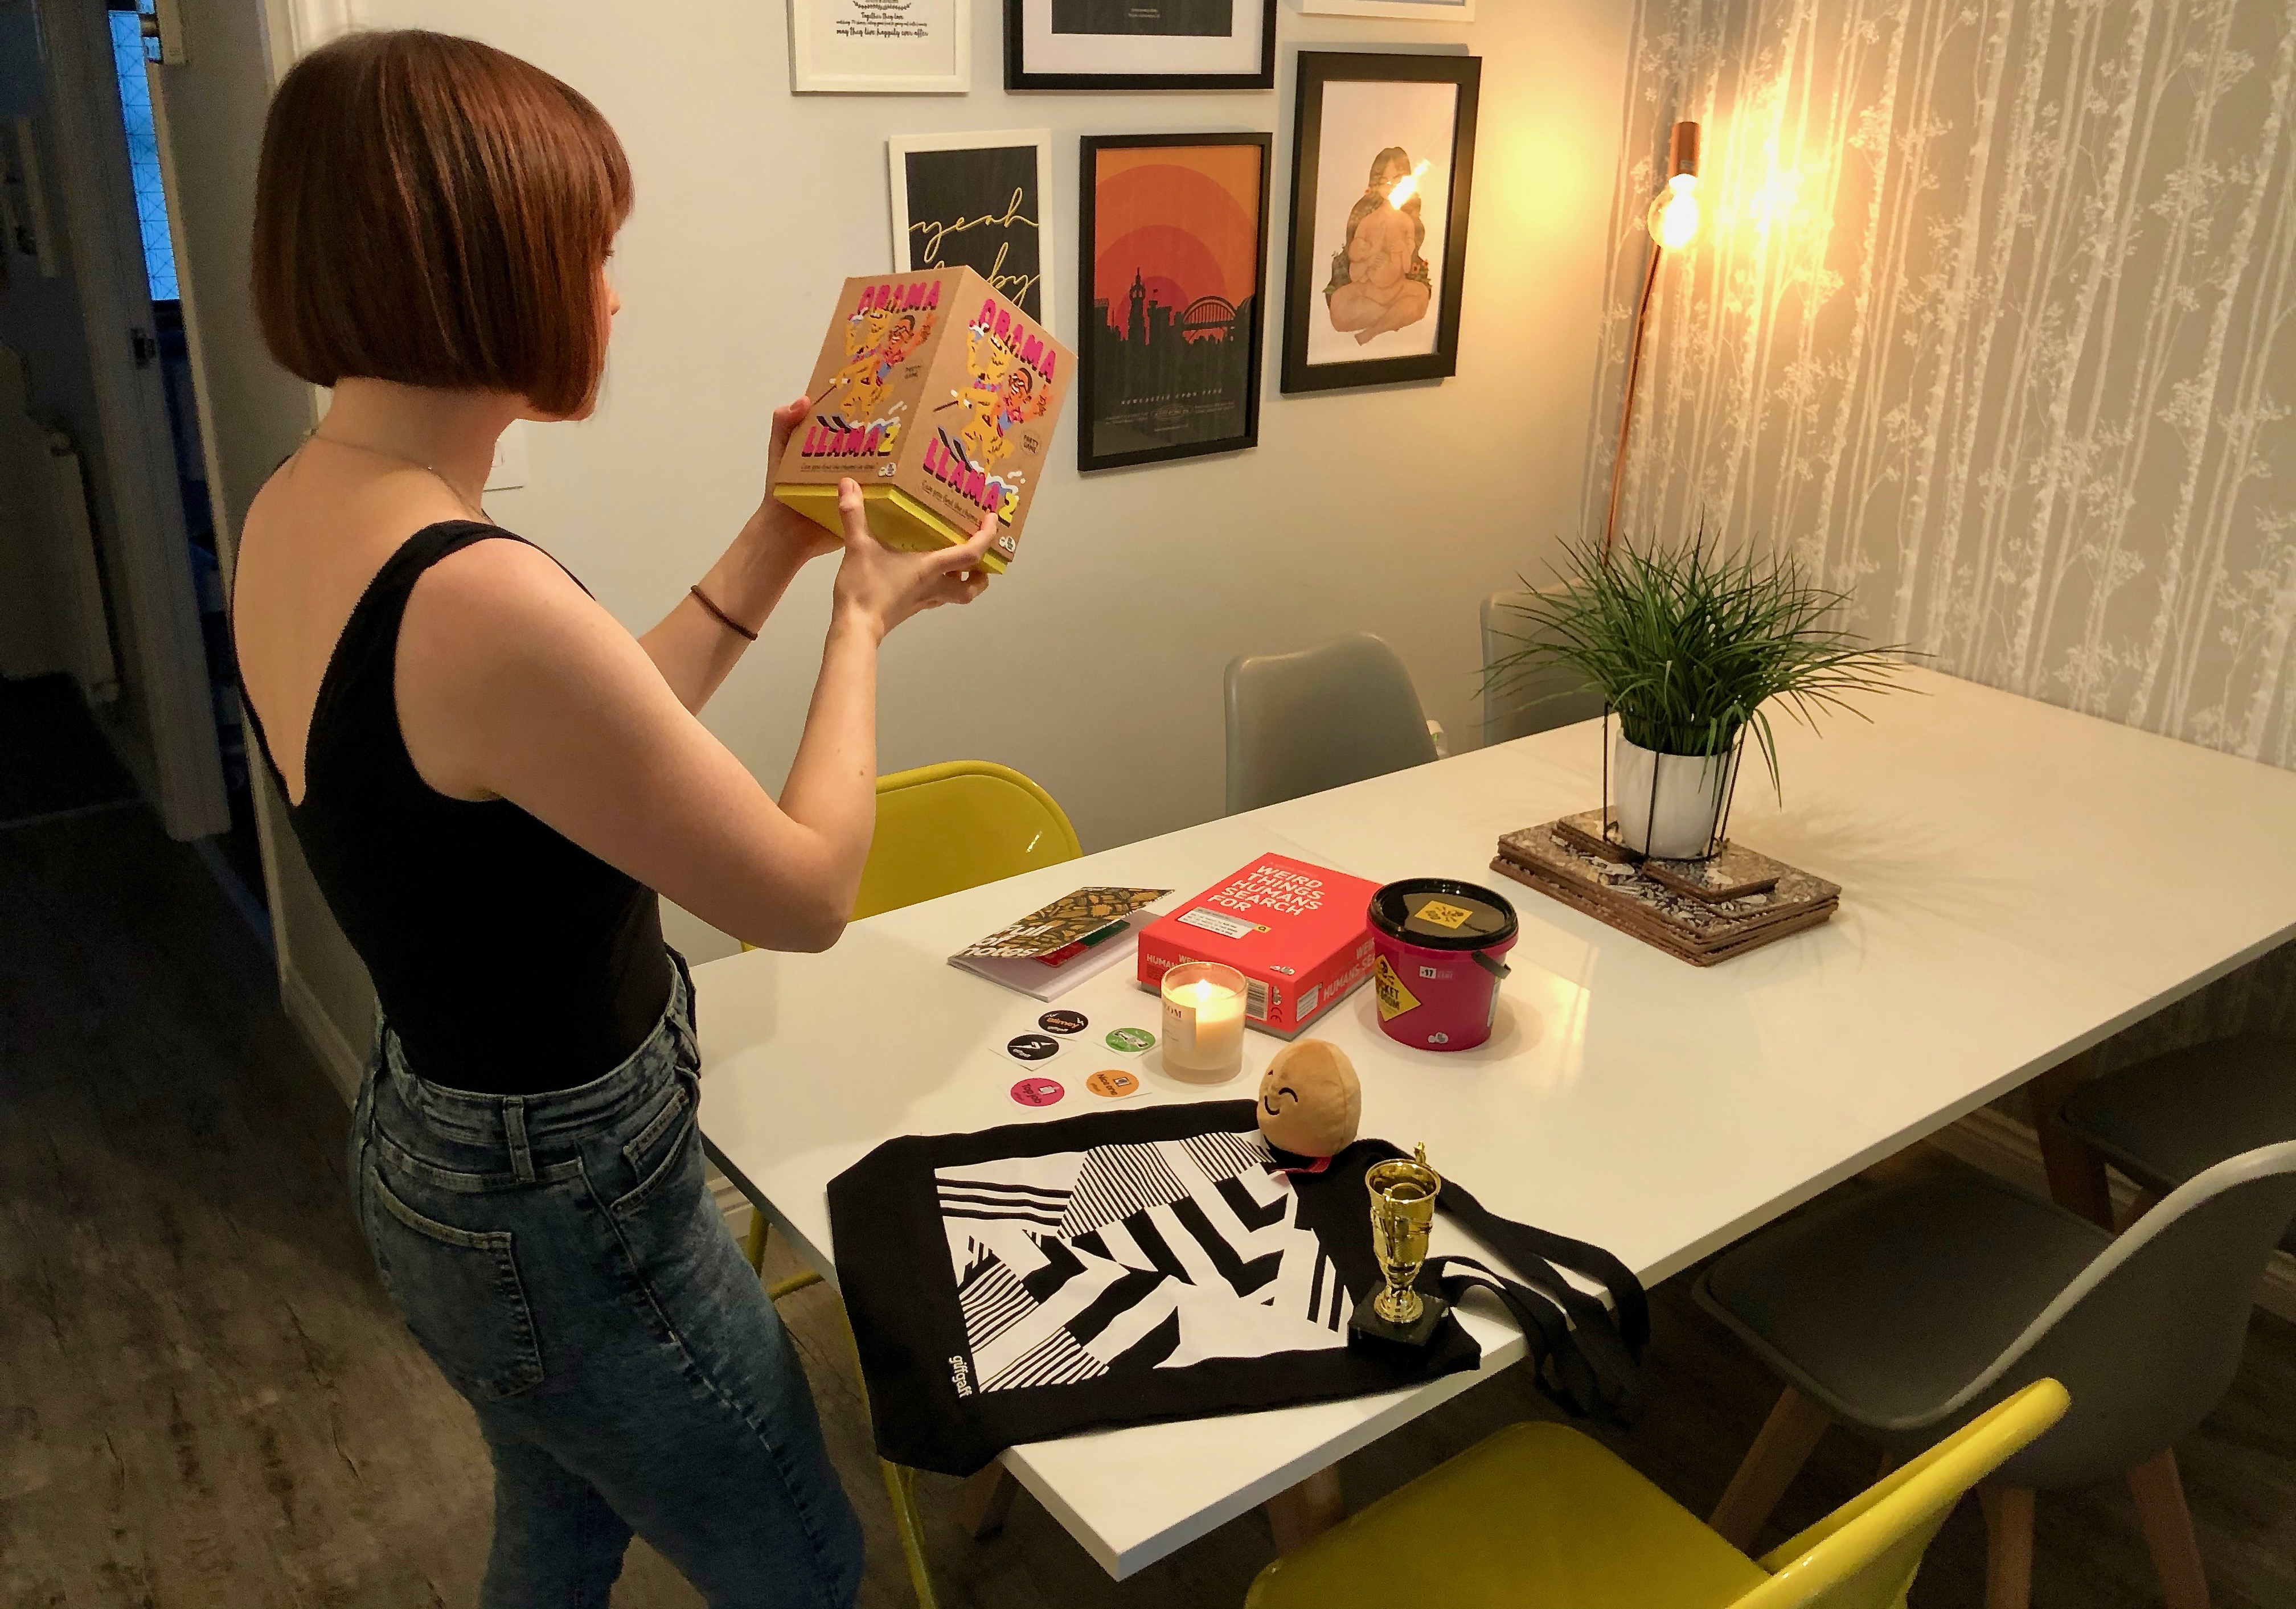 All about staying connected with your friends in your 30s - what is friendship like in your 30s and top tips for how to stay connected. Preparing for games night by reading about the Obama Llama game.